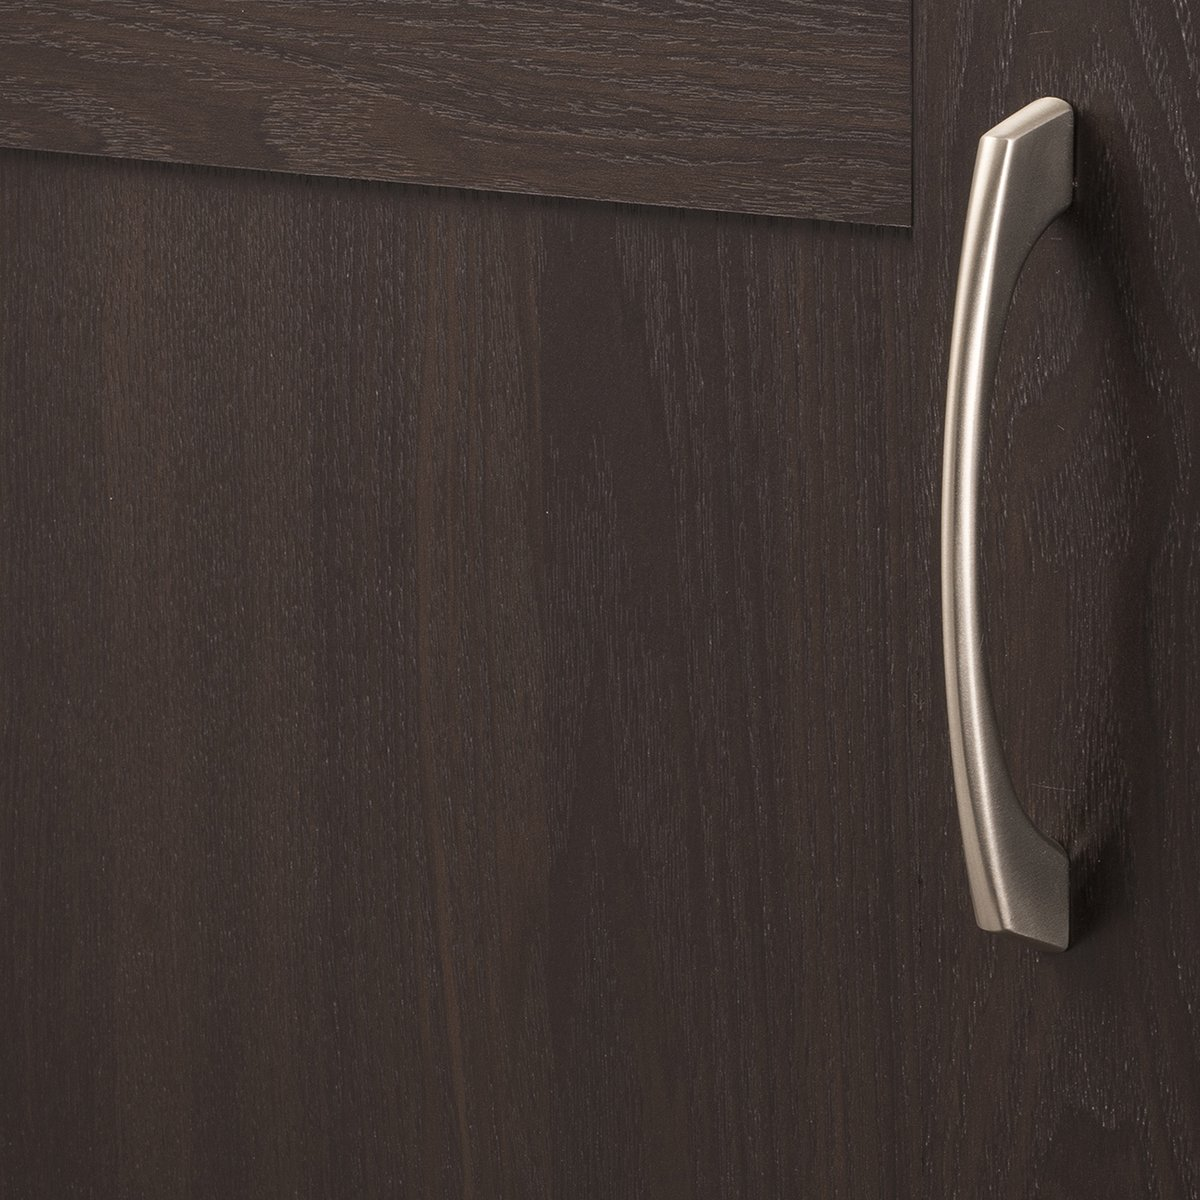 1//2 Inch by 1-11//16 Inch Hickory Hardware P3372-SS Greenwich Collection Knob Stainless Steel